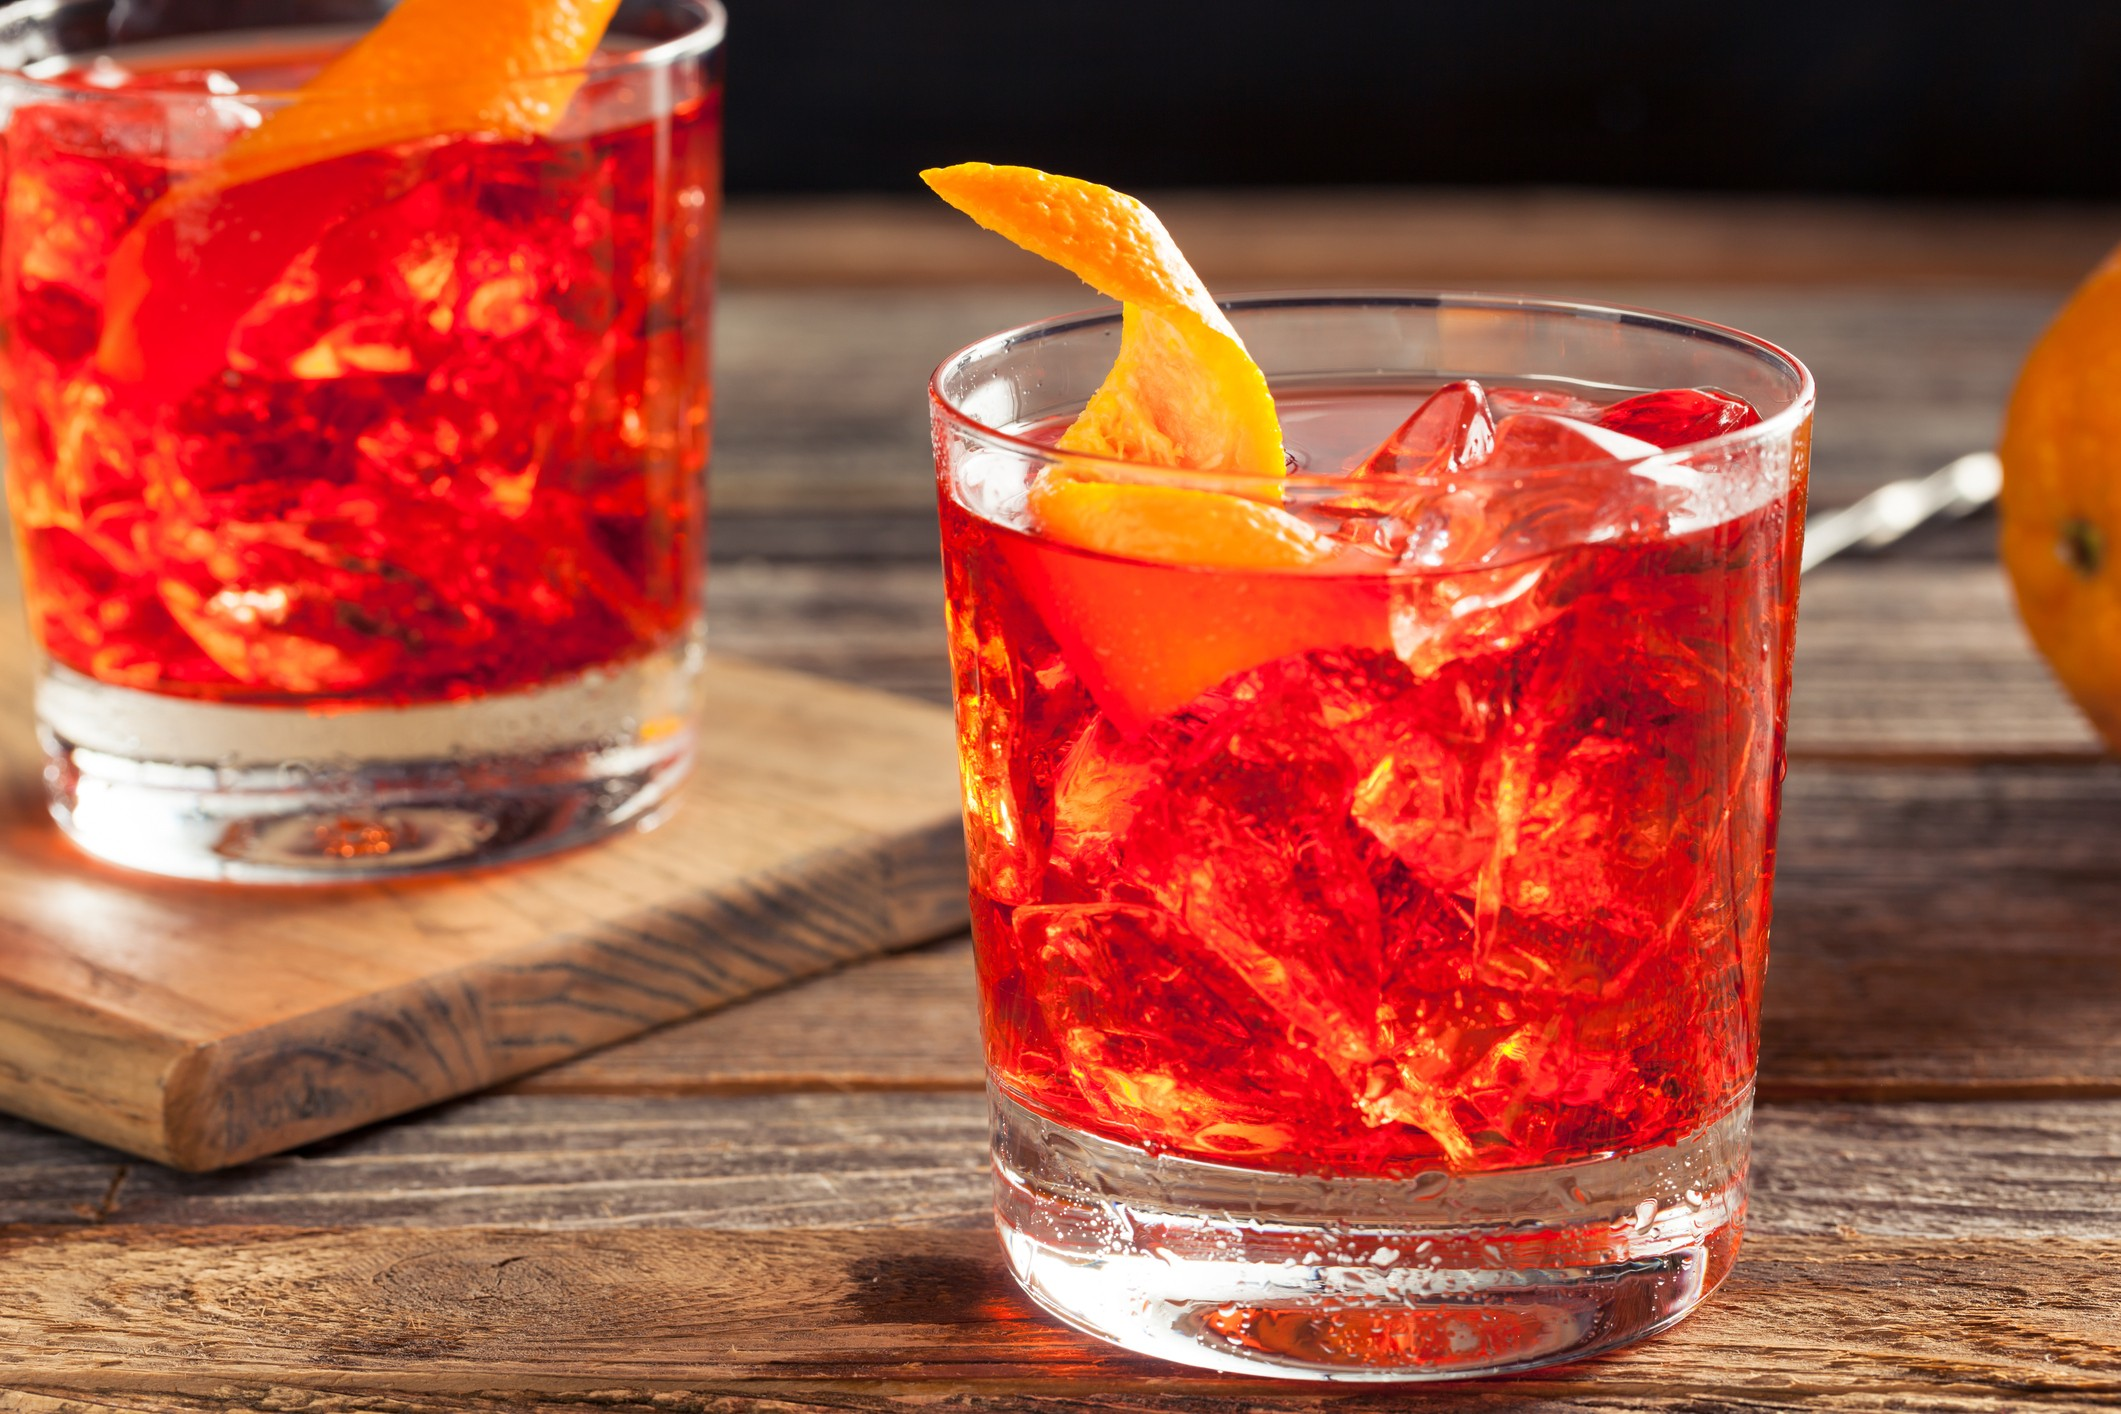 Homemade Negroni Cocktail with and Orange Twist